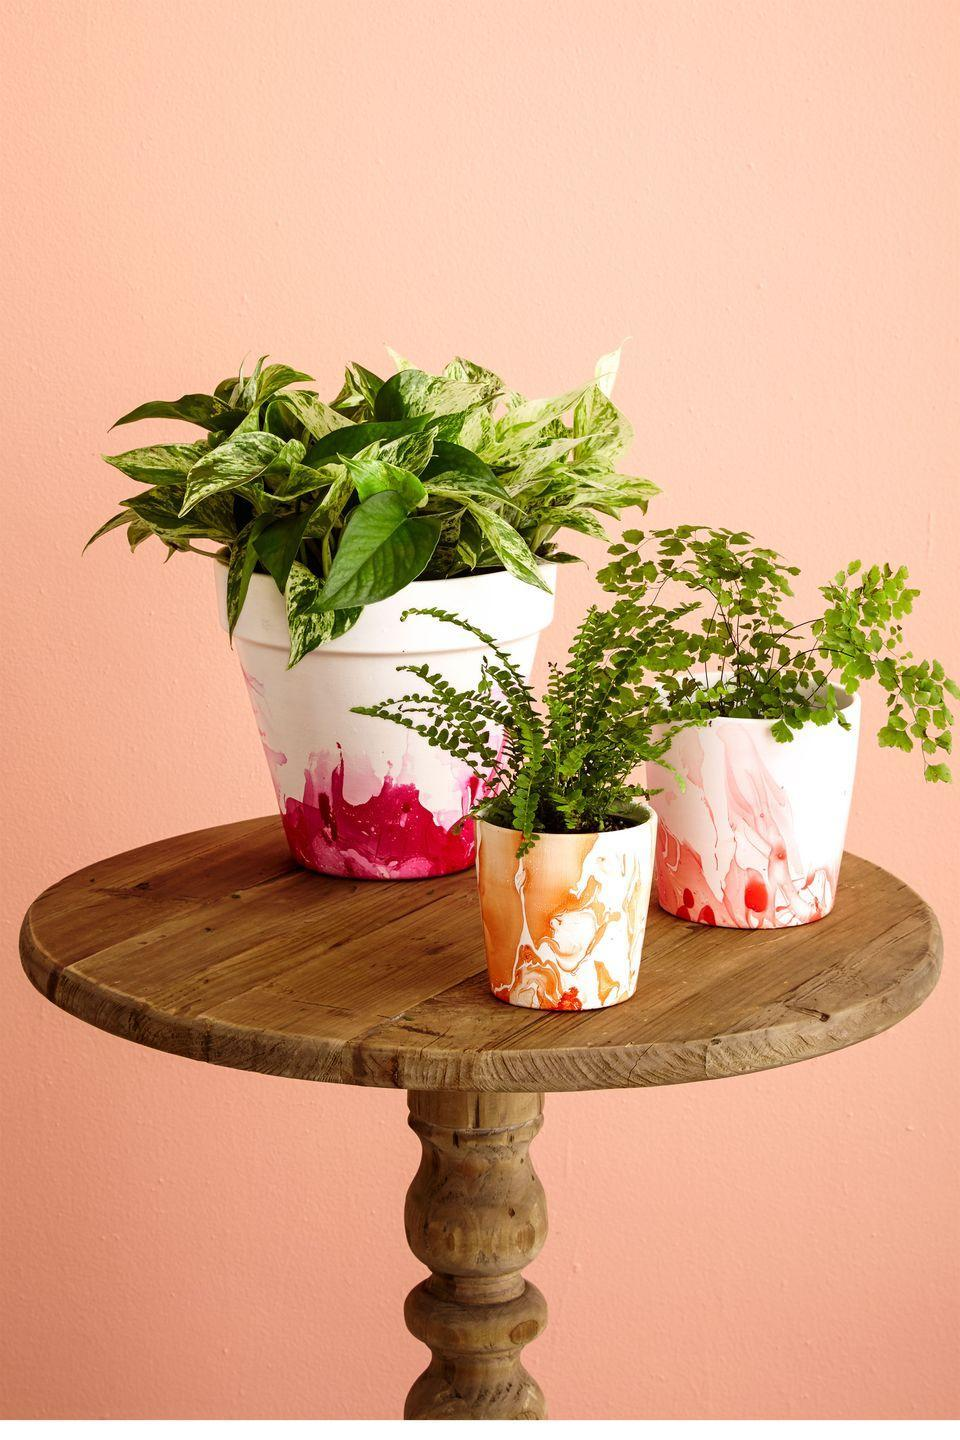 """<p>Create a marble effect on old terracotta pots with leftover nail polish.</p><p><strong>Materials</strong></p><p> • Terracotta pot</p><p> • Sponge paintbrush</p><p> • <a href=""""https://www.amazon.com/INSL-X-SXA110099-04-Waterborne-Bonding-Primer/dp/B000MITIF8/?tag=syn-yahoo-20&ascsubtag=%5Bartid%7C10070.g.2308%5Bsrc%7Cyahoo-us"""" rel=""""nofollow noopener"""" target=""""_blank"""" data-ylk=""""slk:Waterborne bonding primer"""" class=""""link rapid-noclick-resp"""">Waterborne bonding primer</a> </p><p> • White acrylic paint</p><p> • Plastic bucket or tub</p><p> • Nail polish</p><p> • Wood skewer</p><p><strong>1.</strong> On a protected work surface, brush a coat of primer onto the exterior and the inner rim of a clean pot. Once dry, apply two or more coats of paint, letting the pot dry completely between coats.</p><p><strong>2.</strong> Fill a bucket with enough room-temperature water to fully immerse the pot. Drizzle about ¼ of the bottle of nail polish over the water to create a film on the surface. Immediately use a skewer to swirl the polish before it gets too sticky, then dip the pot into the water bucket at an angle and rotate it, allowing the polish to adhere.</p><p><strong>3.</strong> Pull the pot out of the bucket and let the water drip off. Then, place it upside down on your work surface to dry. Flip it over and fill with a leafy or flowering houseplant.</p><p><strong>4.</strong> Weatherproof your pot with a coat of <a href=""""https://www.truevalue.com/multi-surface-waterproofer-12-oz-aerosol"""" rel=""""nofollow noopener"""" target=""""_blank"""" data-ylk=""""slk:Thompson's Aerosol Water Seal"""" class=""""link rapid-noclick-resp"""">Thompson's Aerosol Water Seal</a> to protect it from the elements.</p>"""